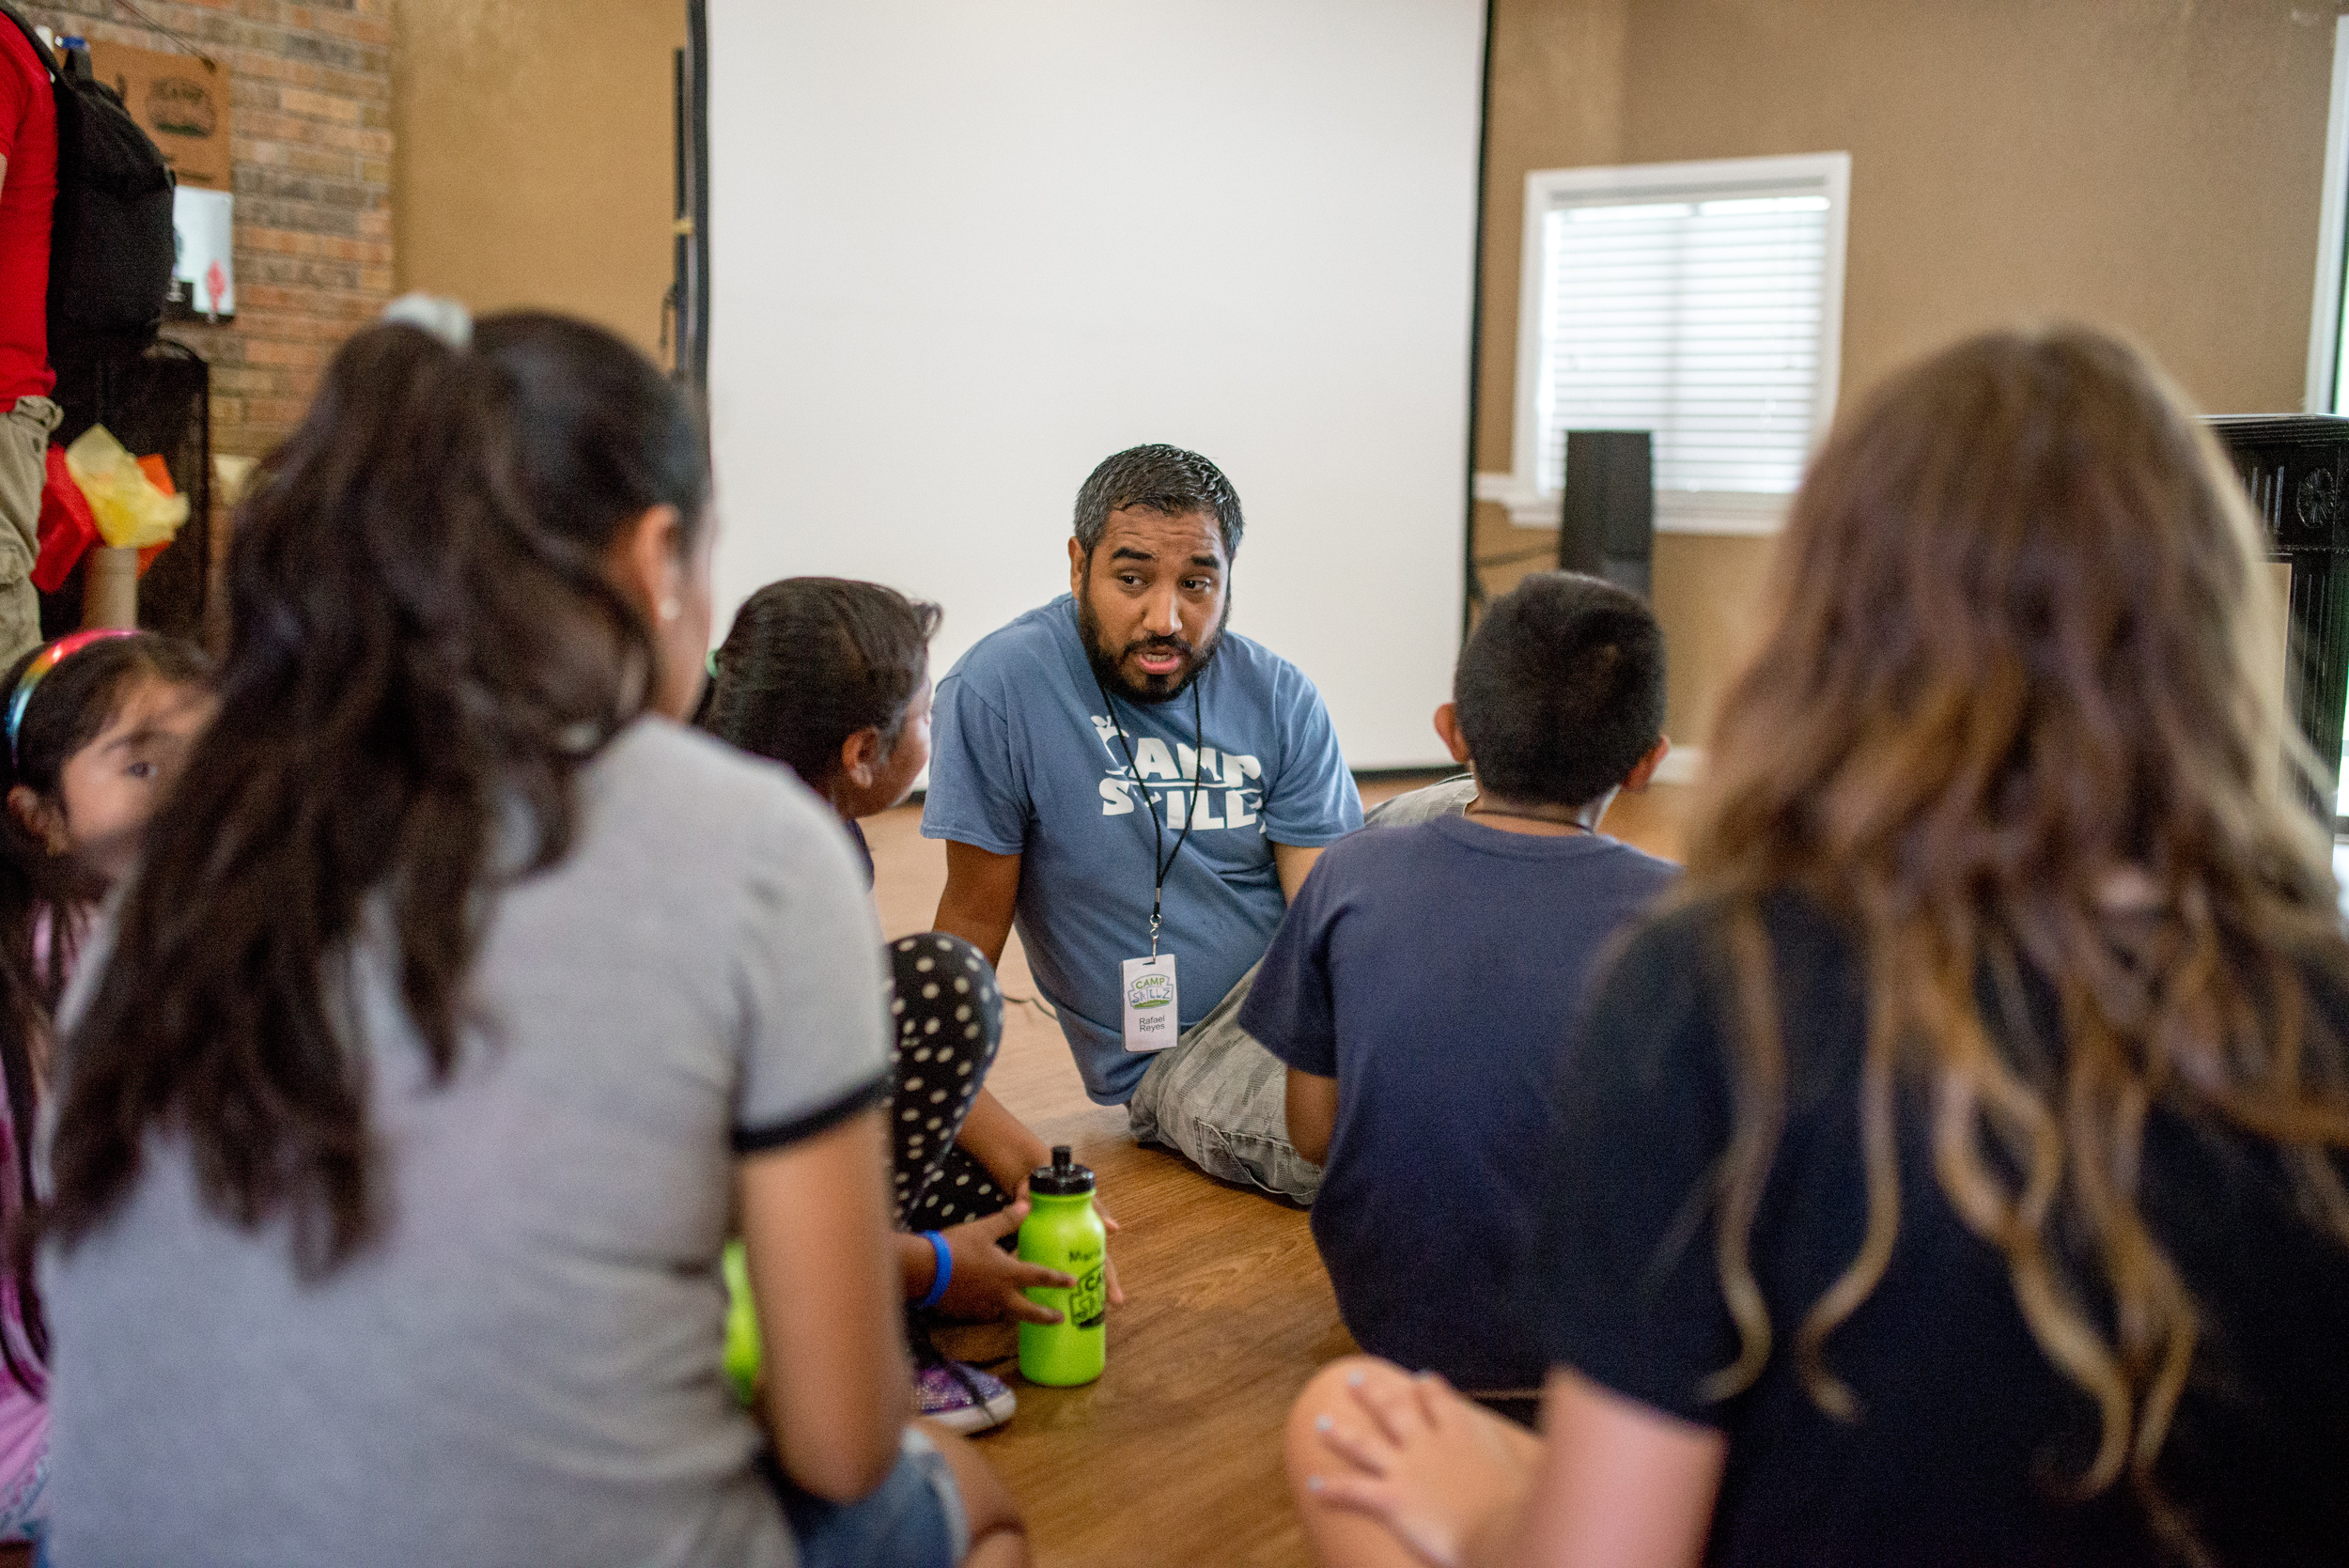 """Rafael Reyes, program leader at Camp Skillz: Antioch, as a small group chat with campers. Our staff doesn't just """"do games,"""" but facilitates an all around quality program for kids."""